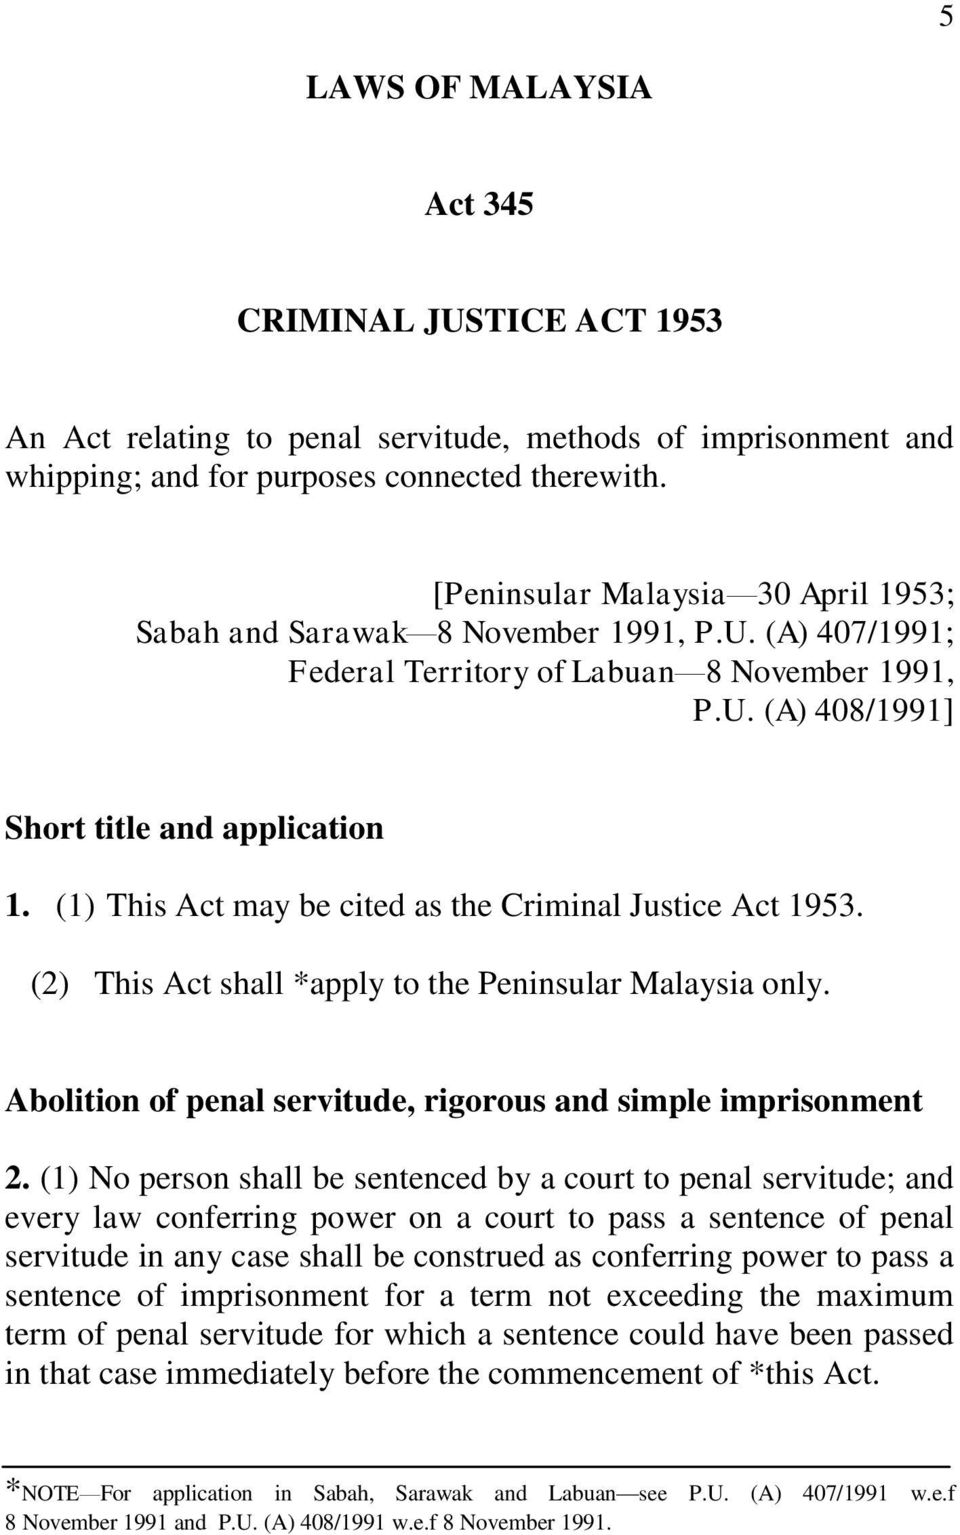 (1) This Act may be cited as the Criminal Justice Act 1953. (2) This Act shall *apply to the Peninsular Malaysia only. Abolition of penal servitude, rigorous and simple imprisonment 2.